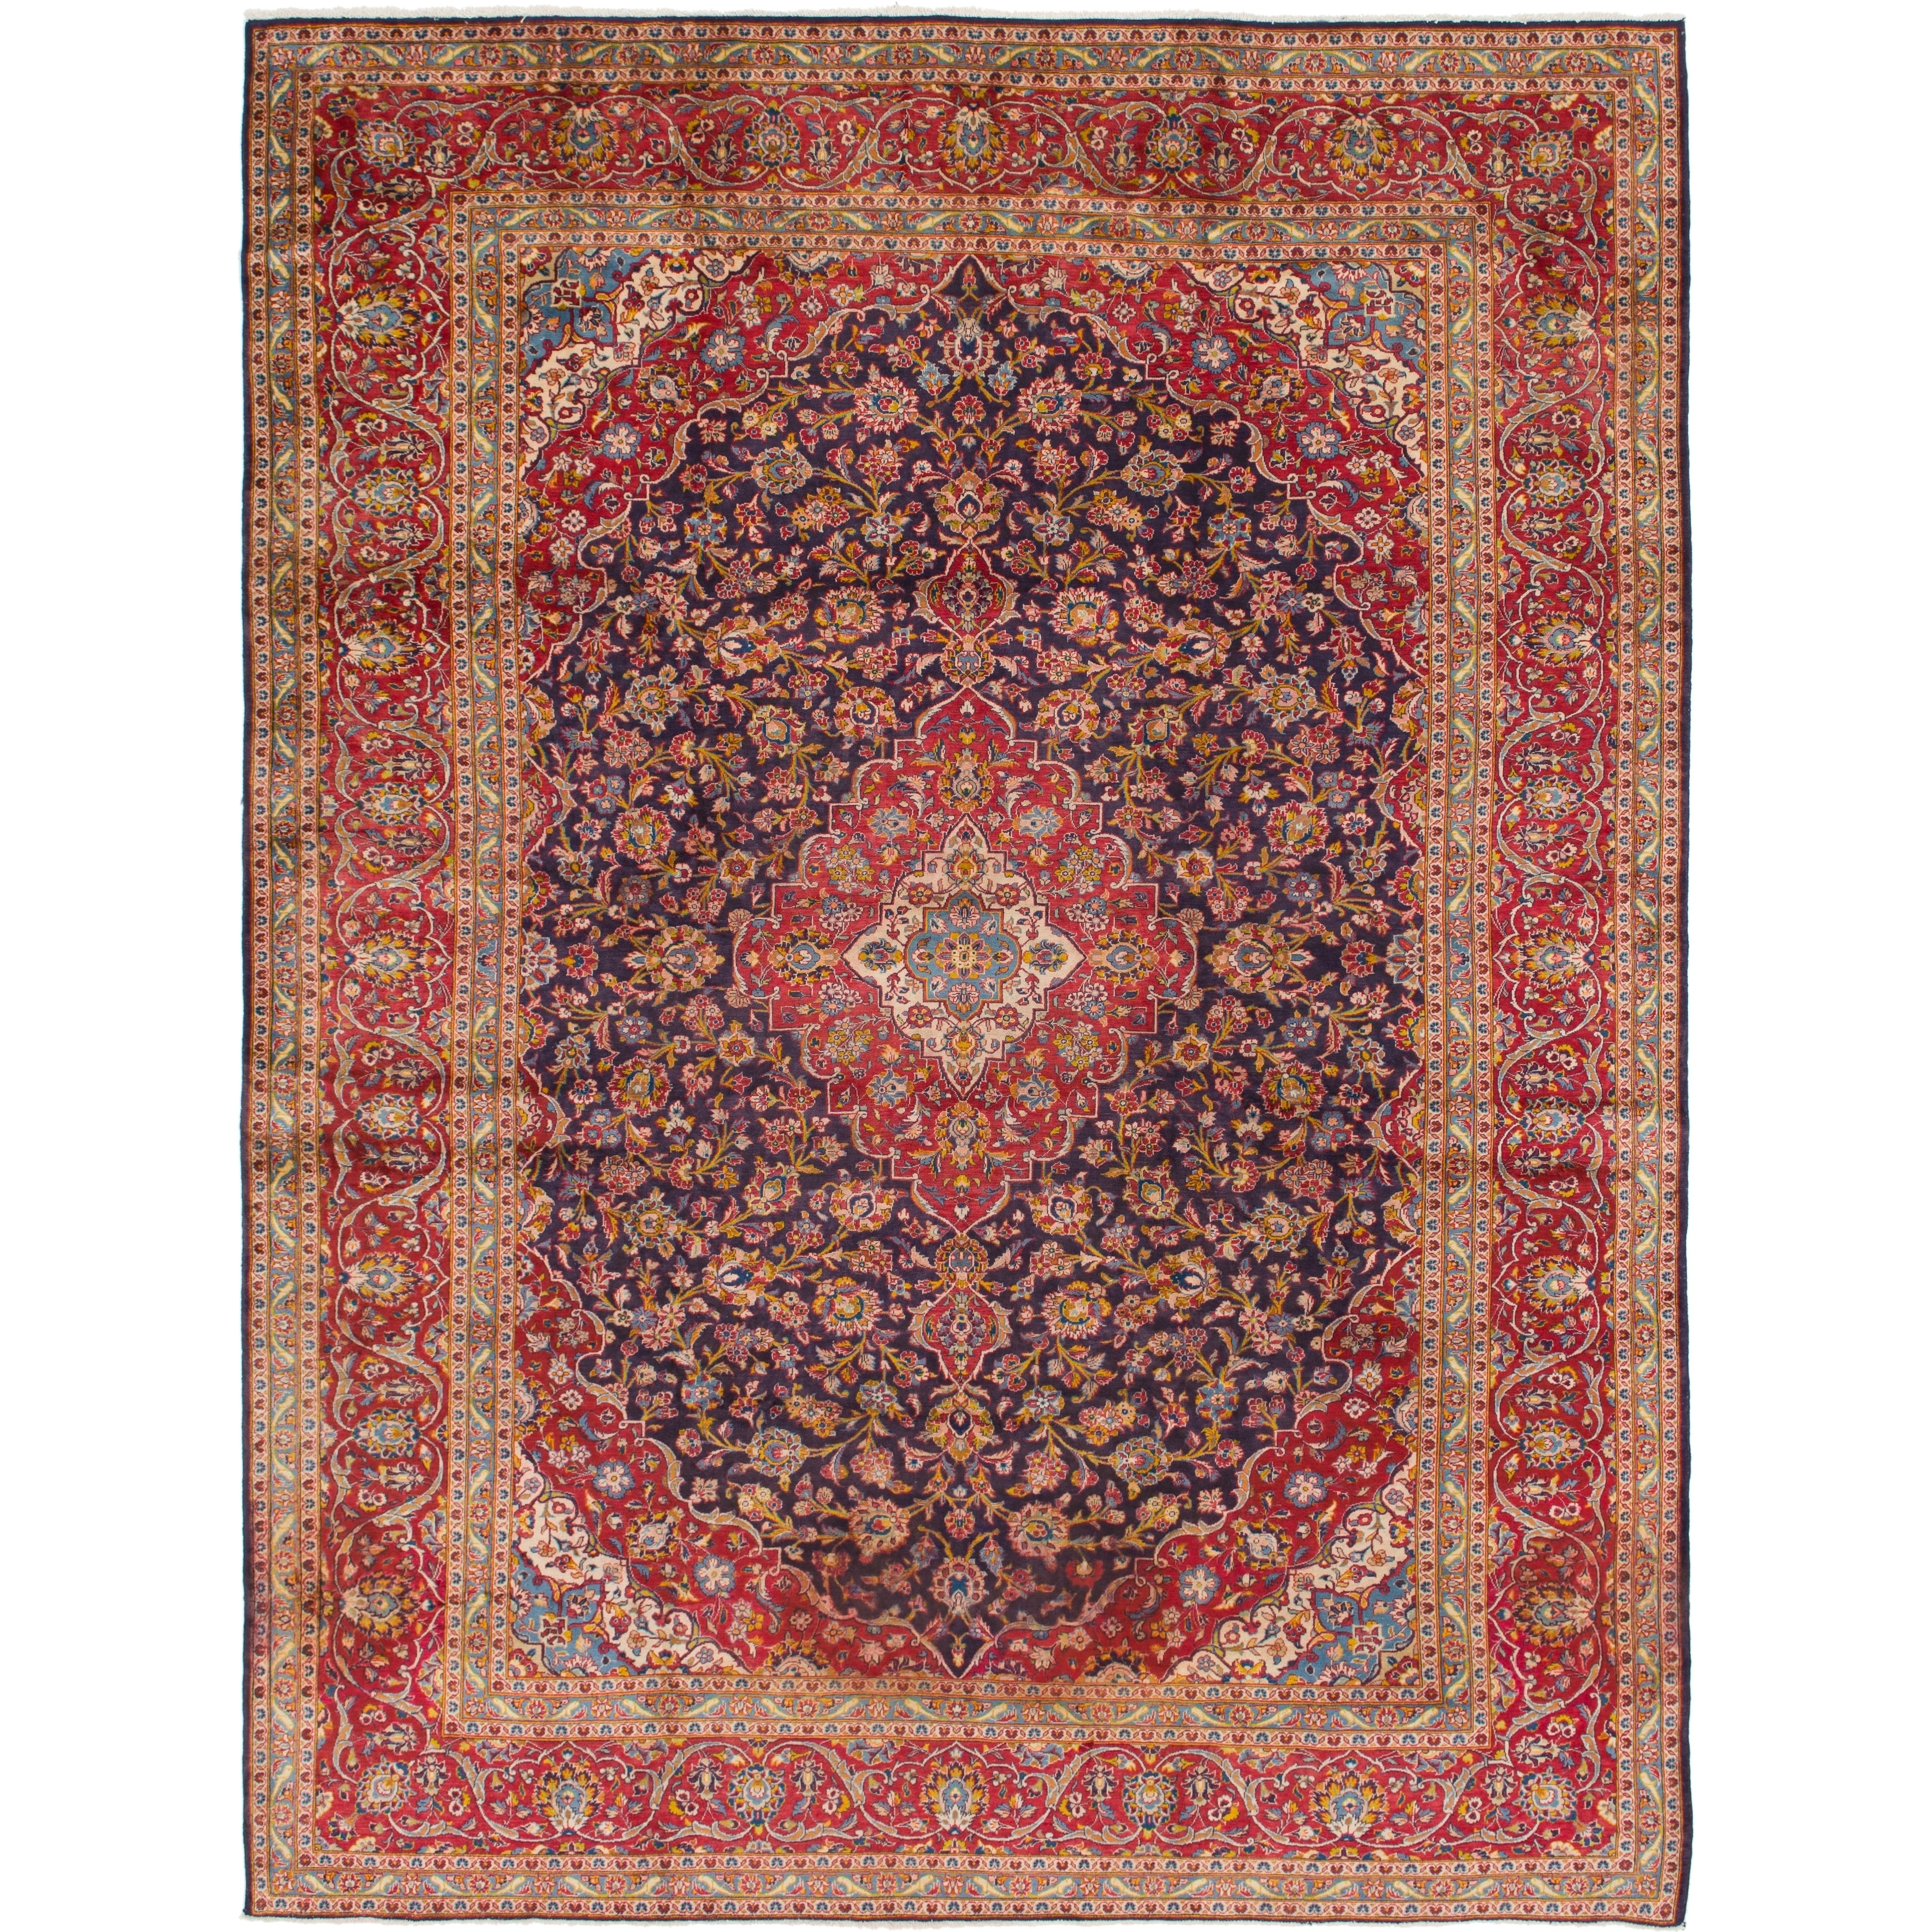 Hand Knotted Kashan Antique Wool Area Rug - 9 10 x 12 10 (Navy blue - 9 10 x 12 10)